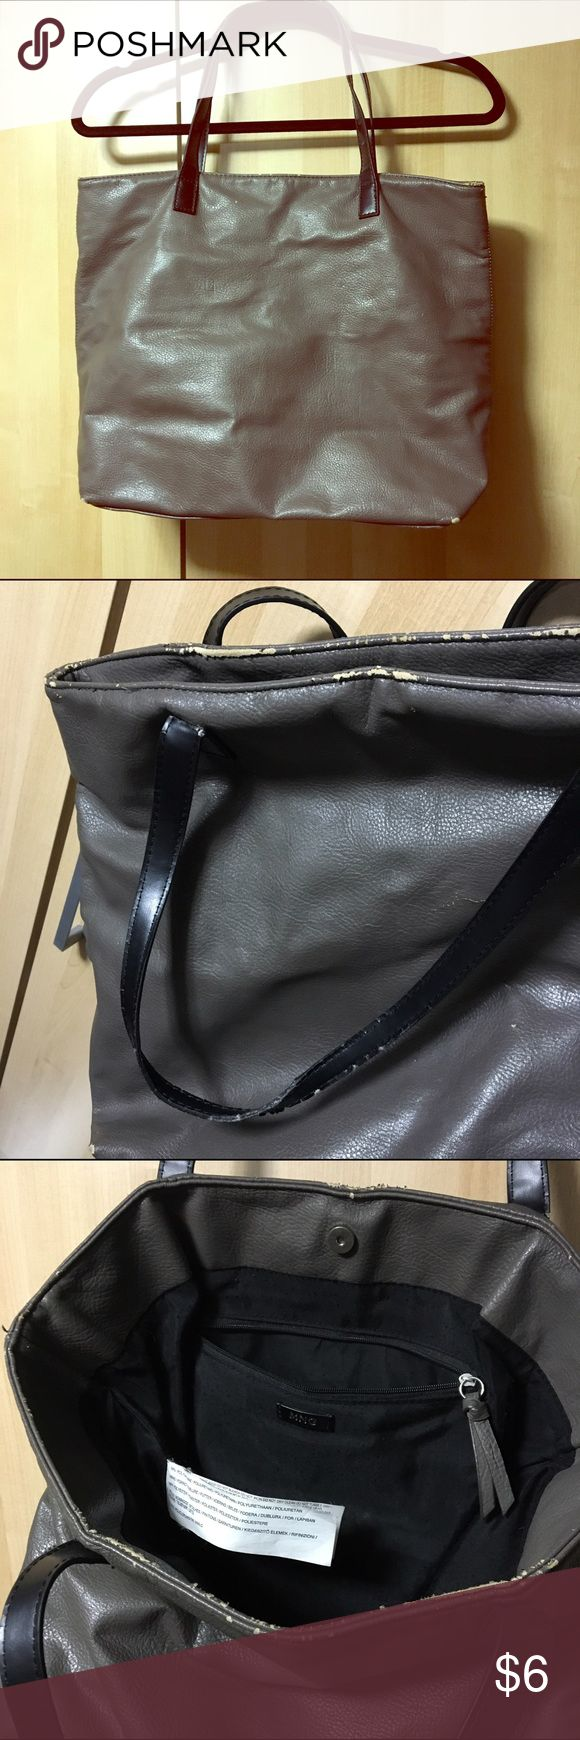 MNG Used Tote MNG Mango roomy gray colored tote with black handles. Magnetic closure, one main compartment with small zippered compartment inside. Pre loved bag with major signs of usage edges and corners of the bag and handles, please refer to photos. Questions welcomed. Mango Bags Totes